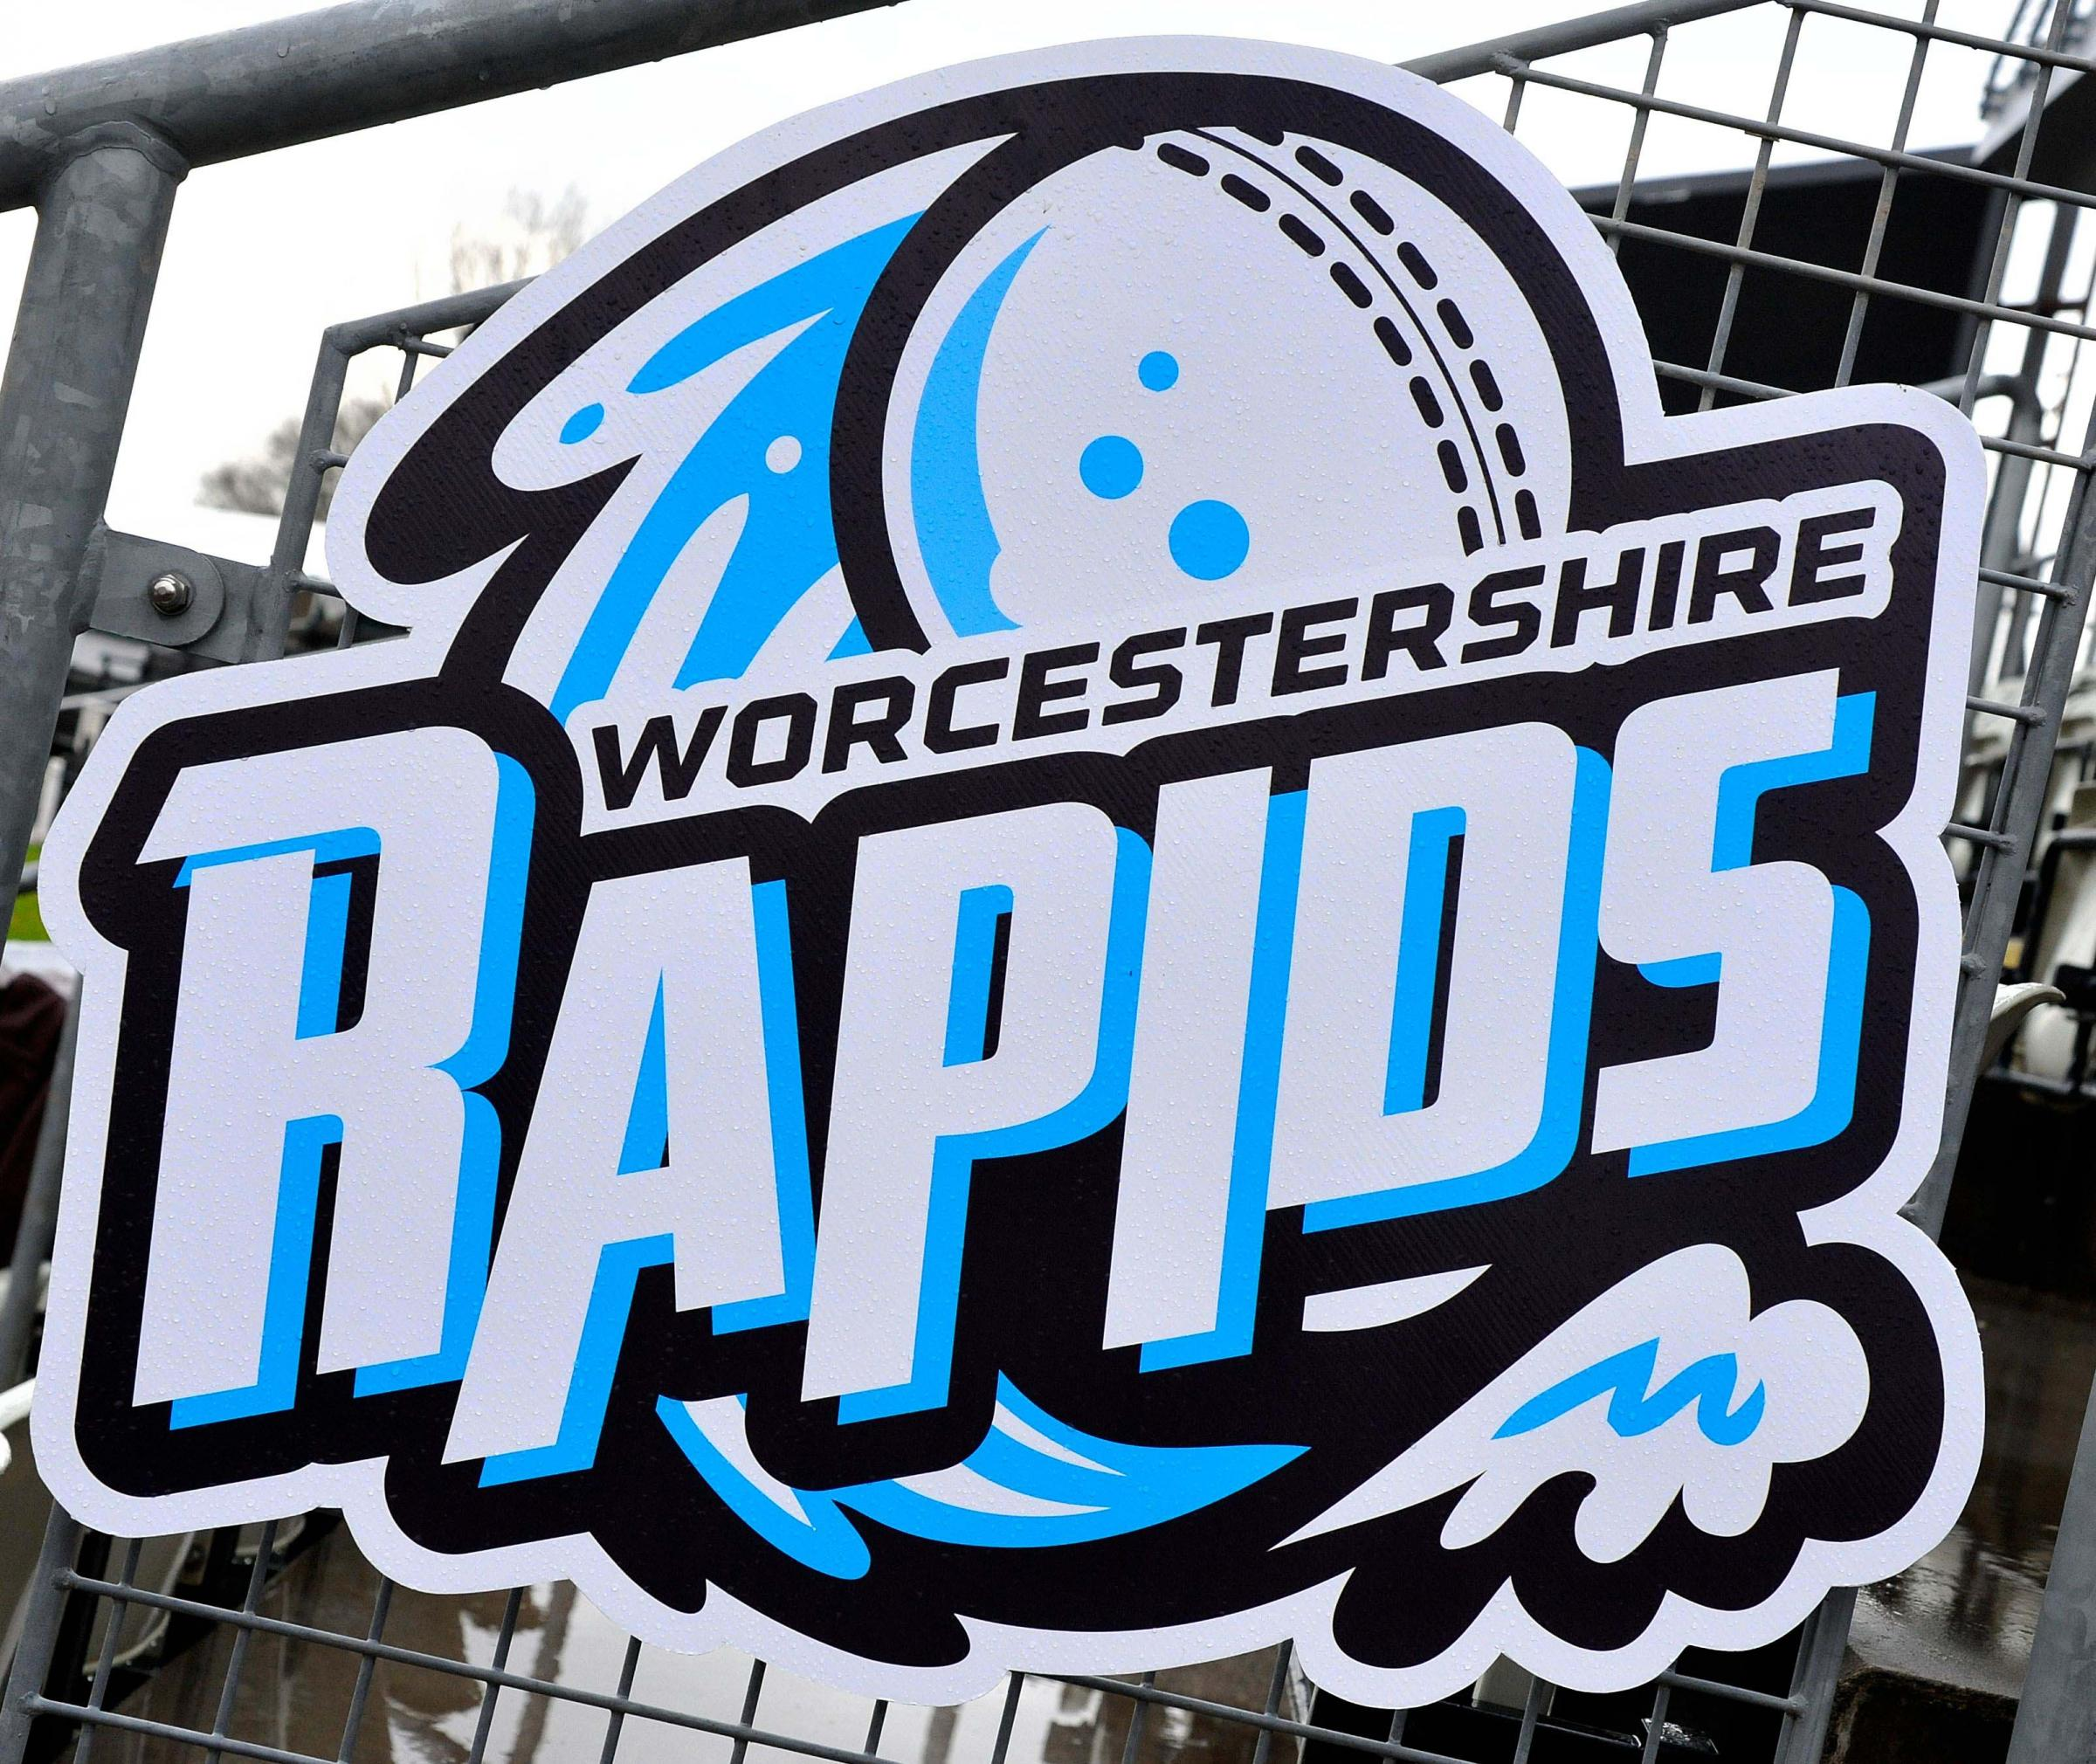 County to be known as the Worcestershire Rapids for NatWest T20 Blast